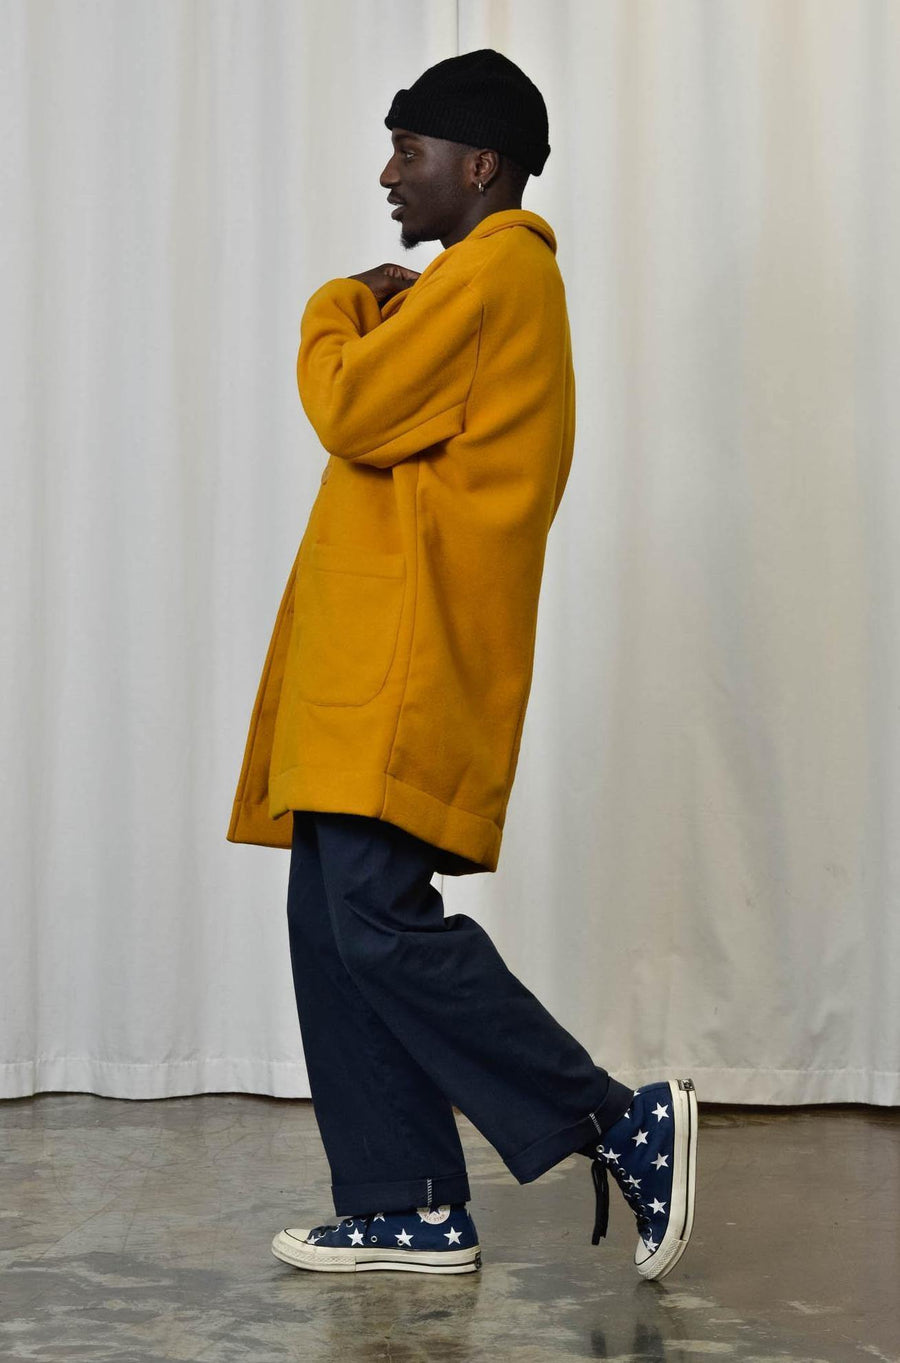 Unisex Coat in Mustard - Artclub and Friends